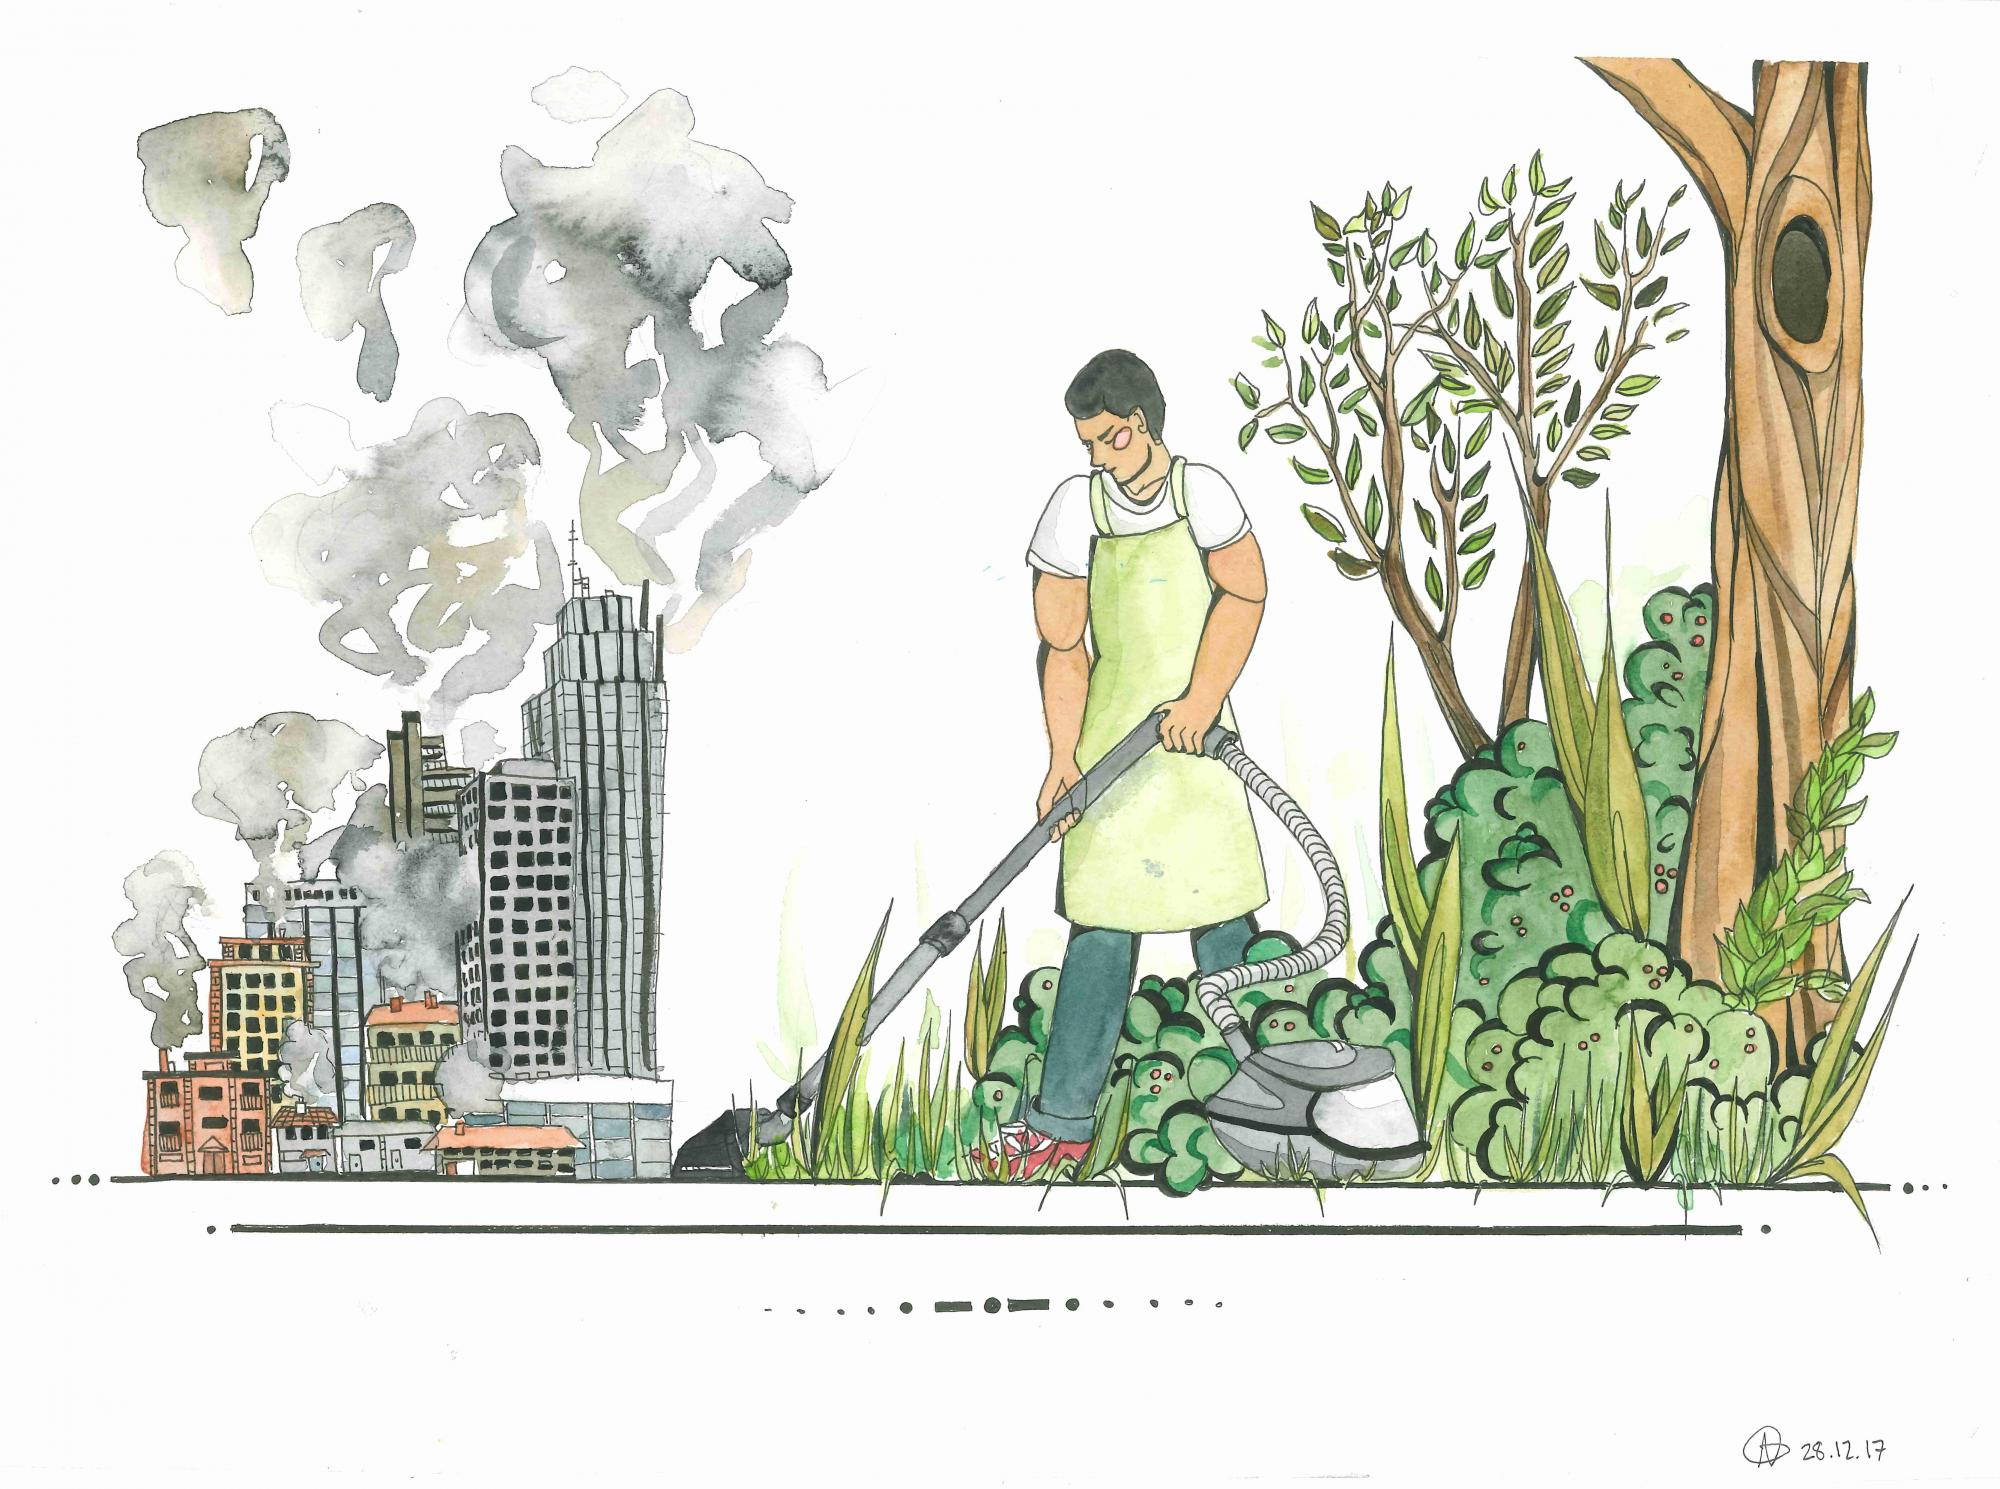 """""""Vacuum cleaning my Way to a Greener World"""" Ailie Gieseler, age 16. Berlin. Germany. River of Words 2018 Finalist."""